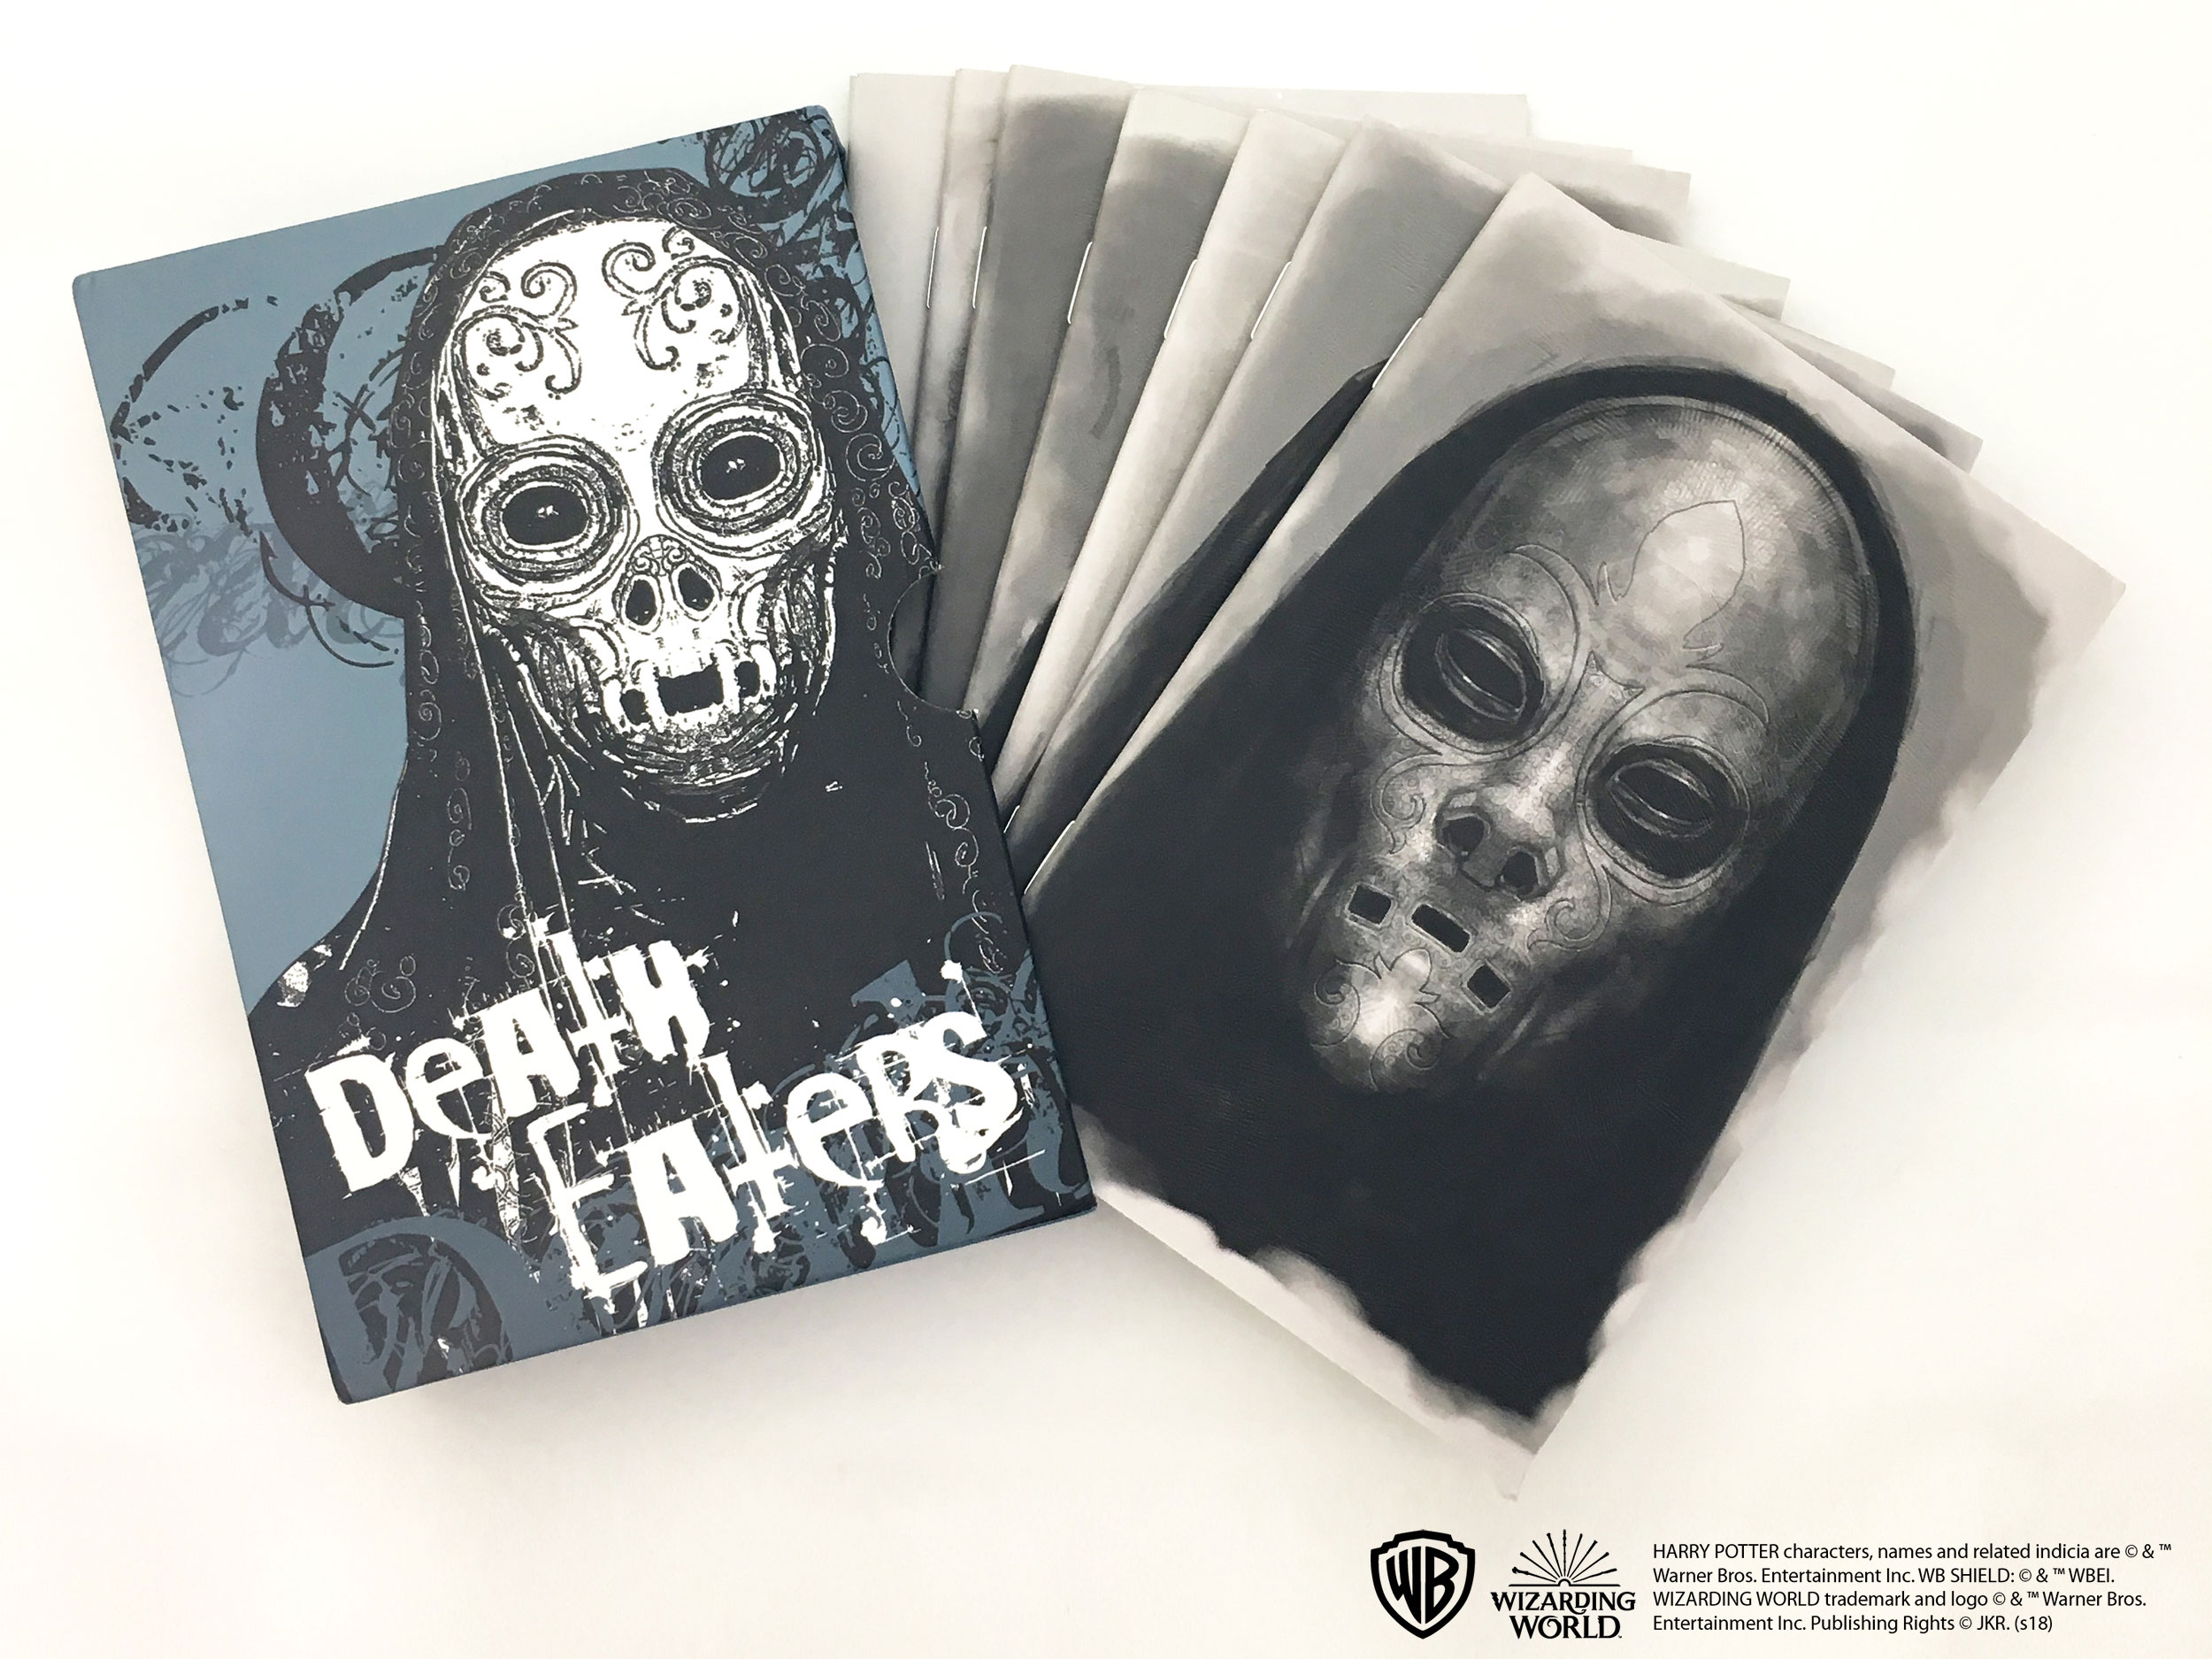 Dark Arts Con*Quest Journals featuring Death Eater masks